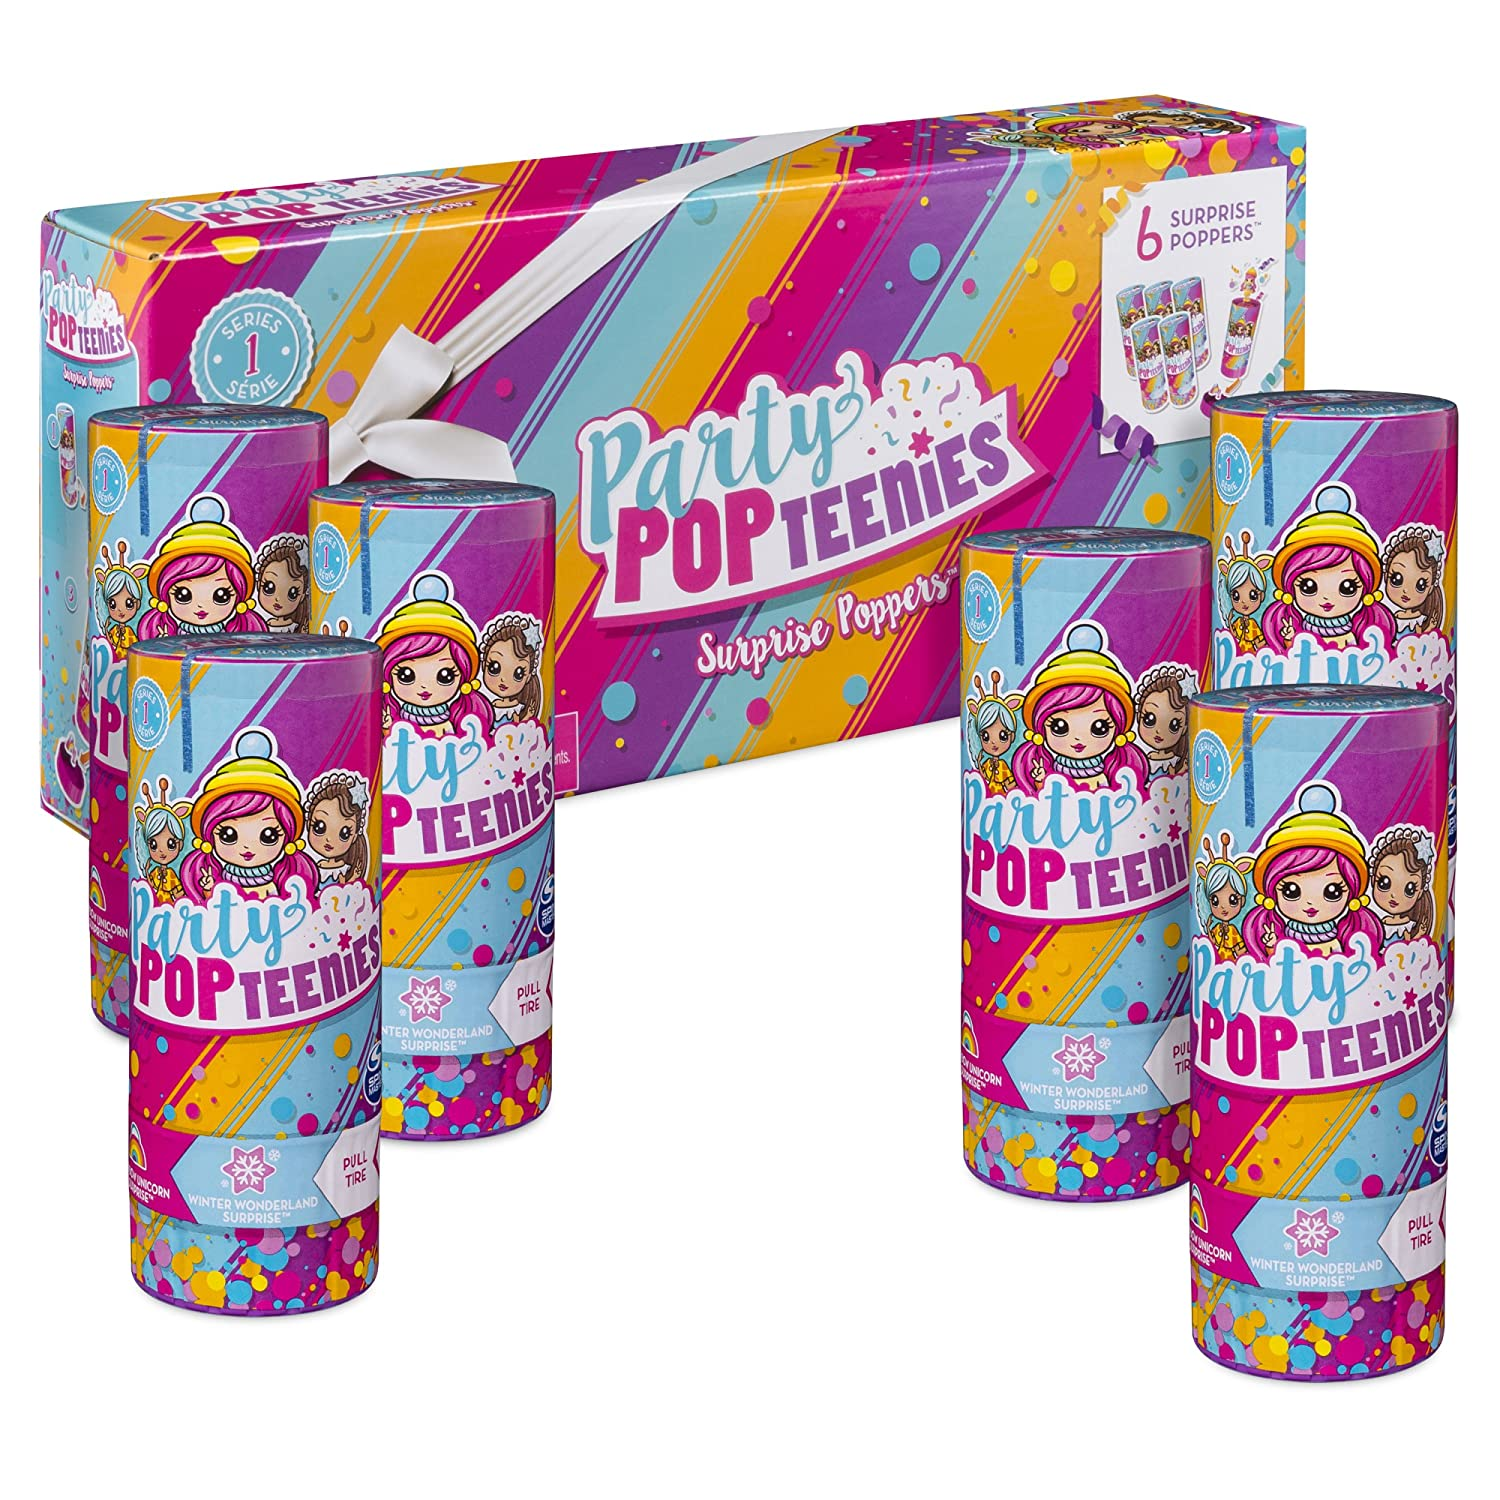 Party Pack for Ages 4 and Up 6 Surprise Popper Bundle with Confetti Collectible Mini Dolls and Accessories Styles Vary Party Popteenies